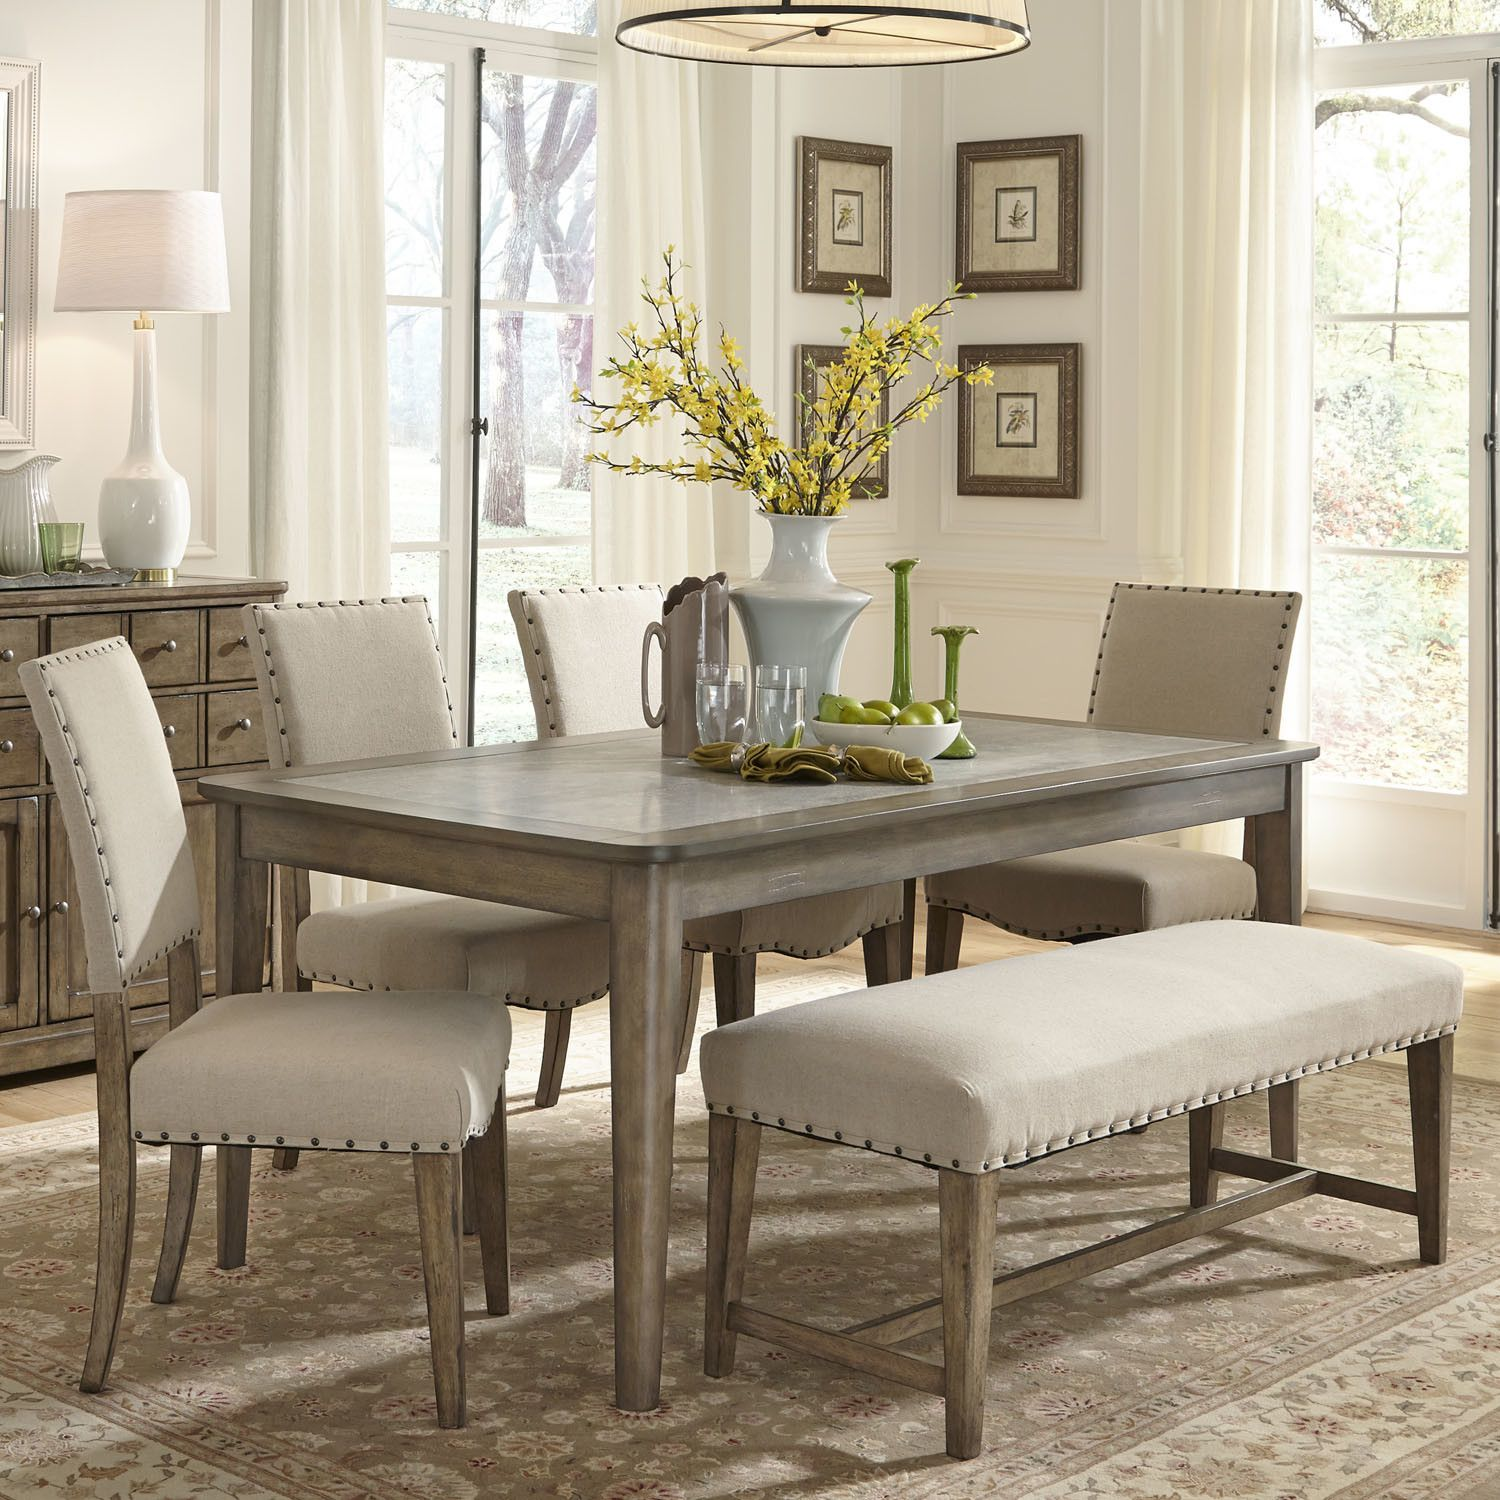 Online Home Store For Furniture Decor Outdoors More Wayfair Dining Table With Bench Dining Table In Kitchen Kitchen Table Settings